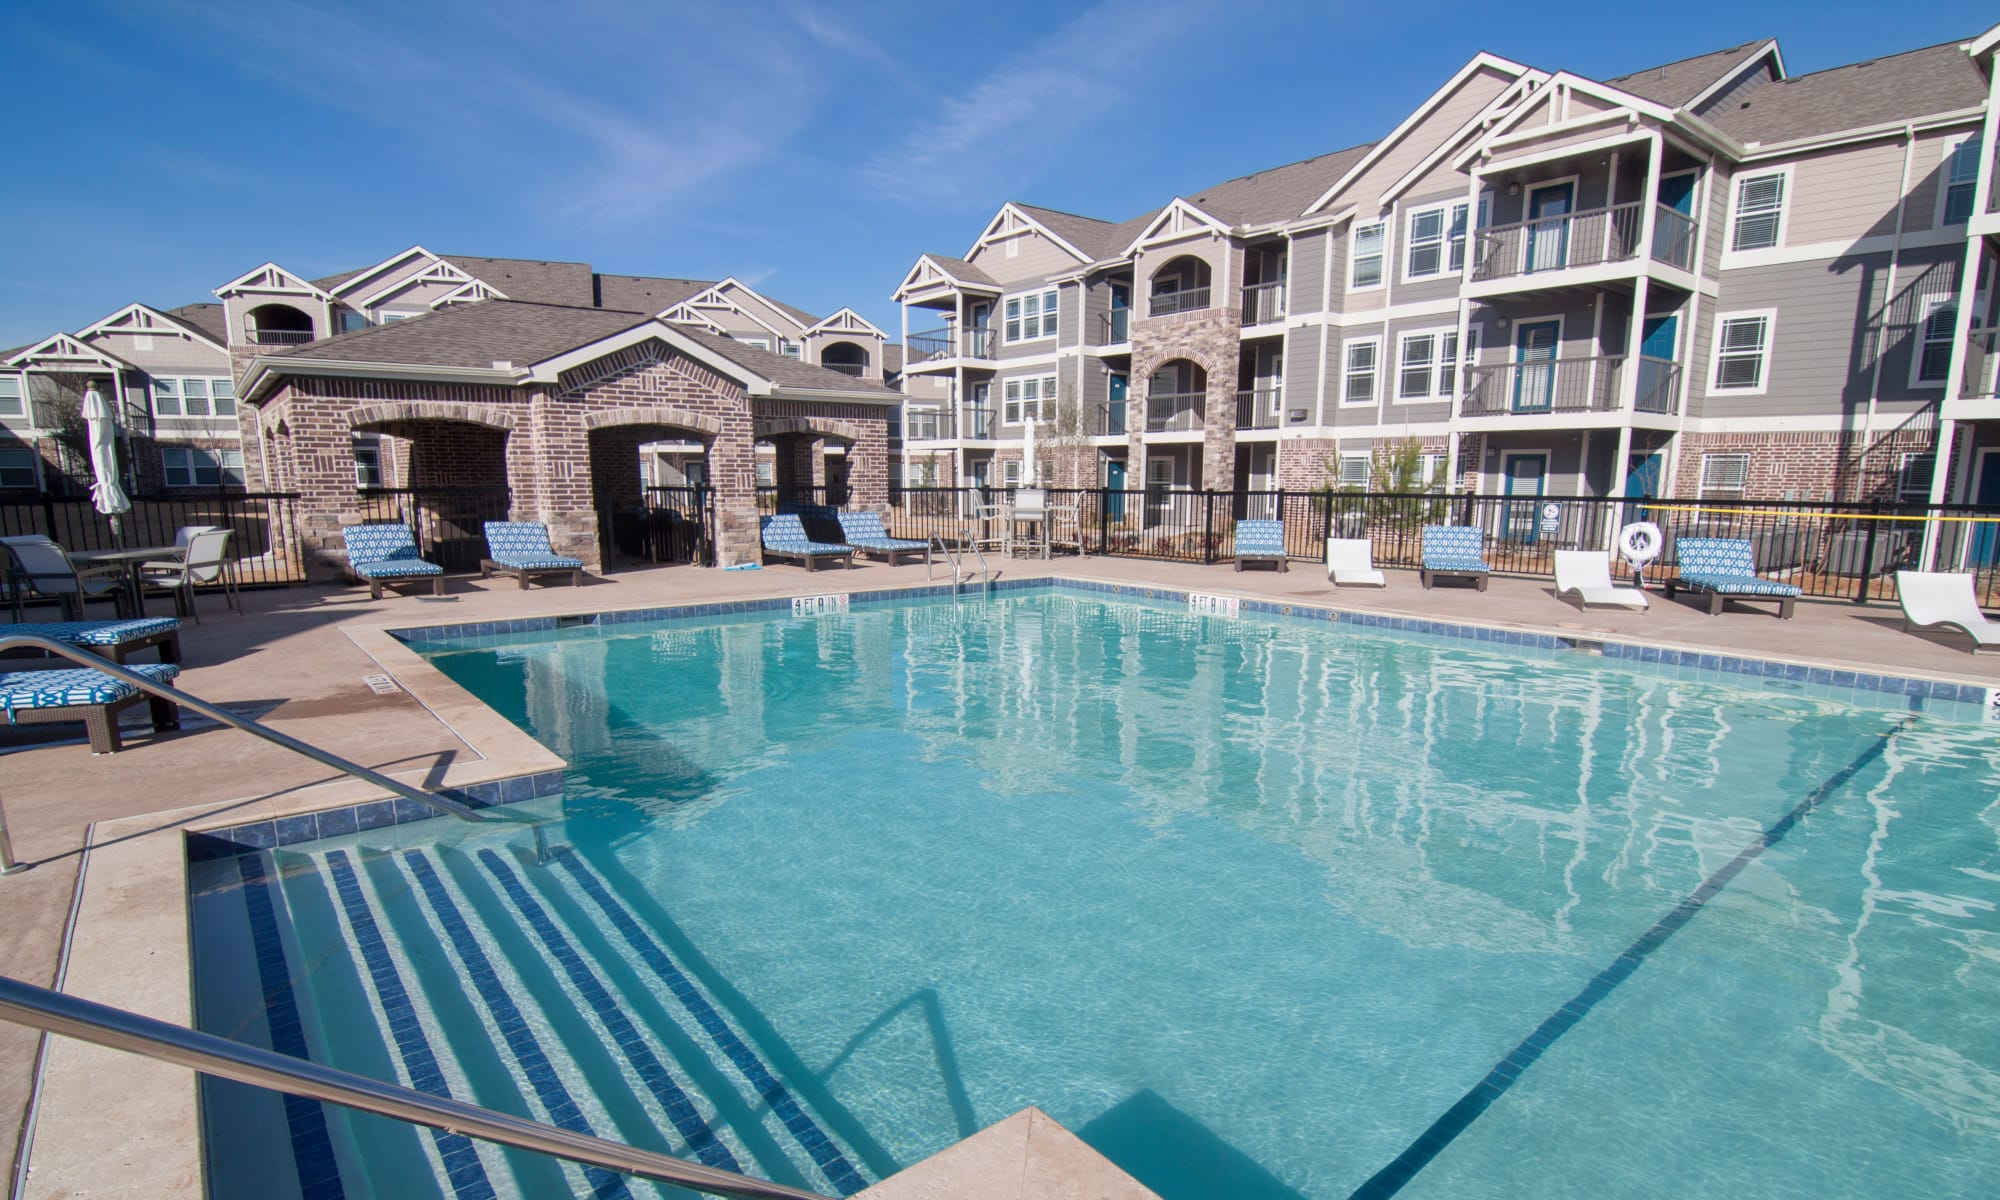 Scissortail Crossing Apartments in Broken Arrow, Oklahoma